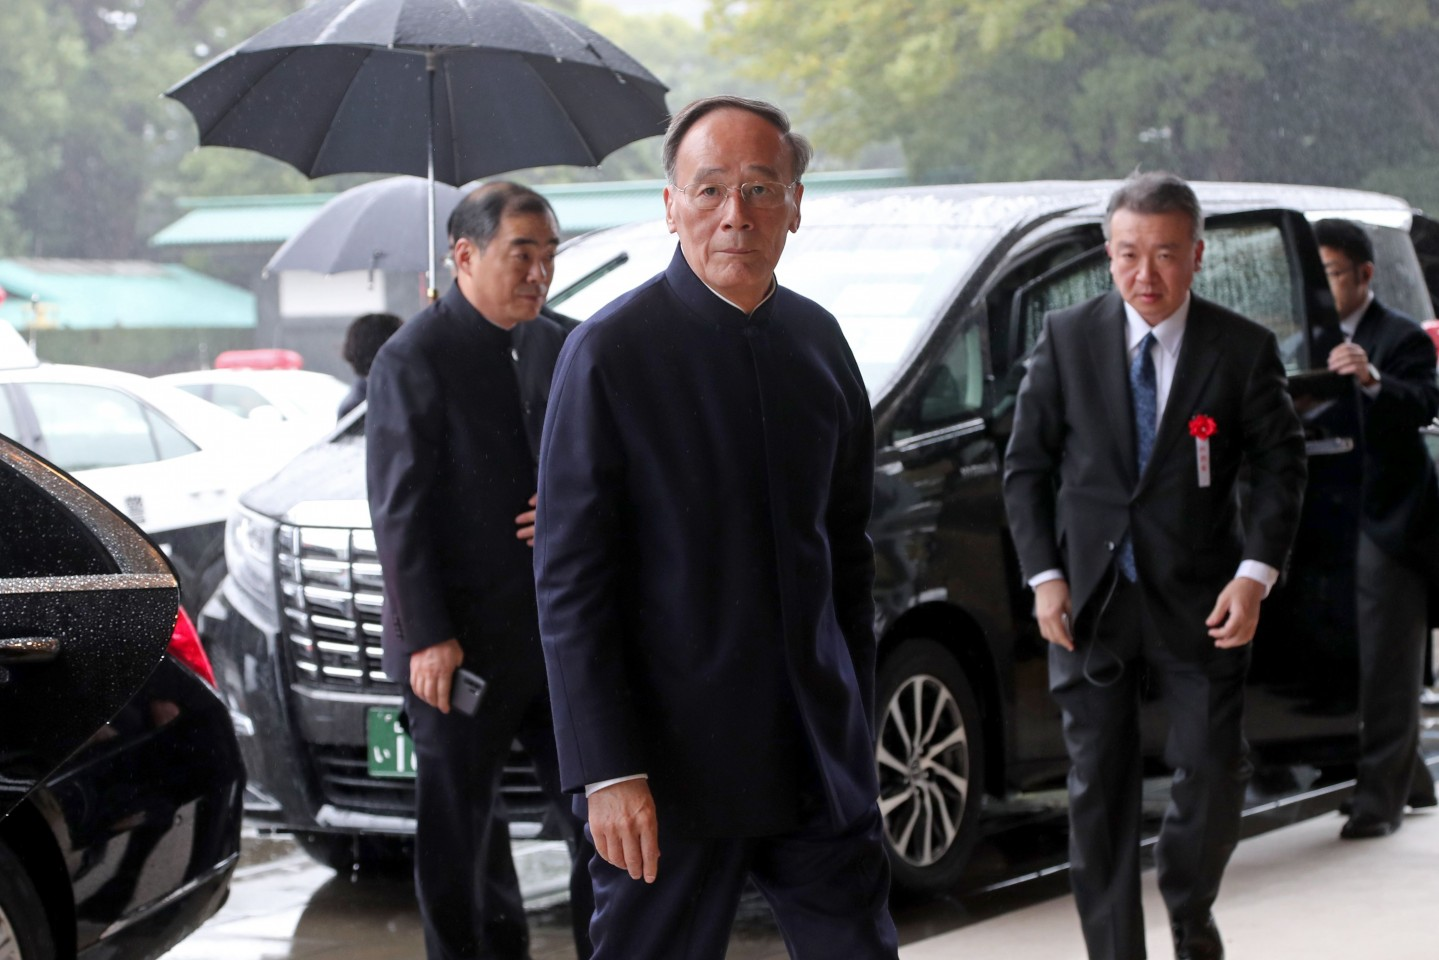 China's Vice President Wang Qishan arrives at the Imperial Palace to attend the proclamation ceremony of Japan's Emperor Naruhito's ascension to the throne in Tokyo on October 22, 2019. (Photo by Koji Sasahara / POOL / AFP)